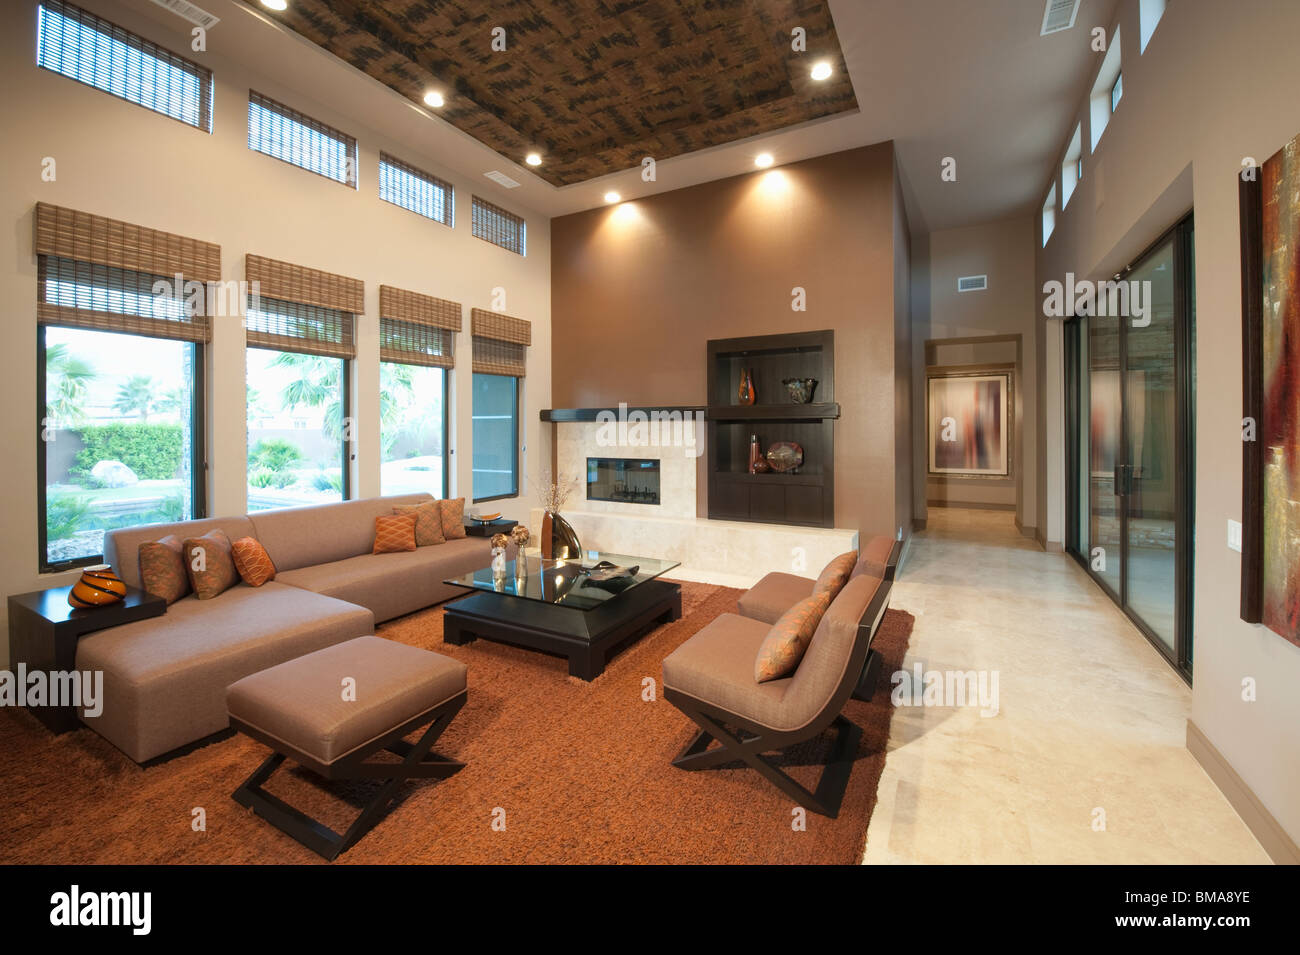 Spacious living room with double height ceiling - Spacious Living Room With Double Height Ceiling Stock Photo